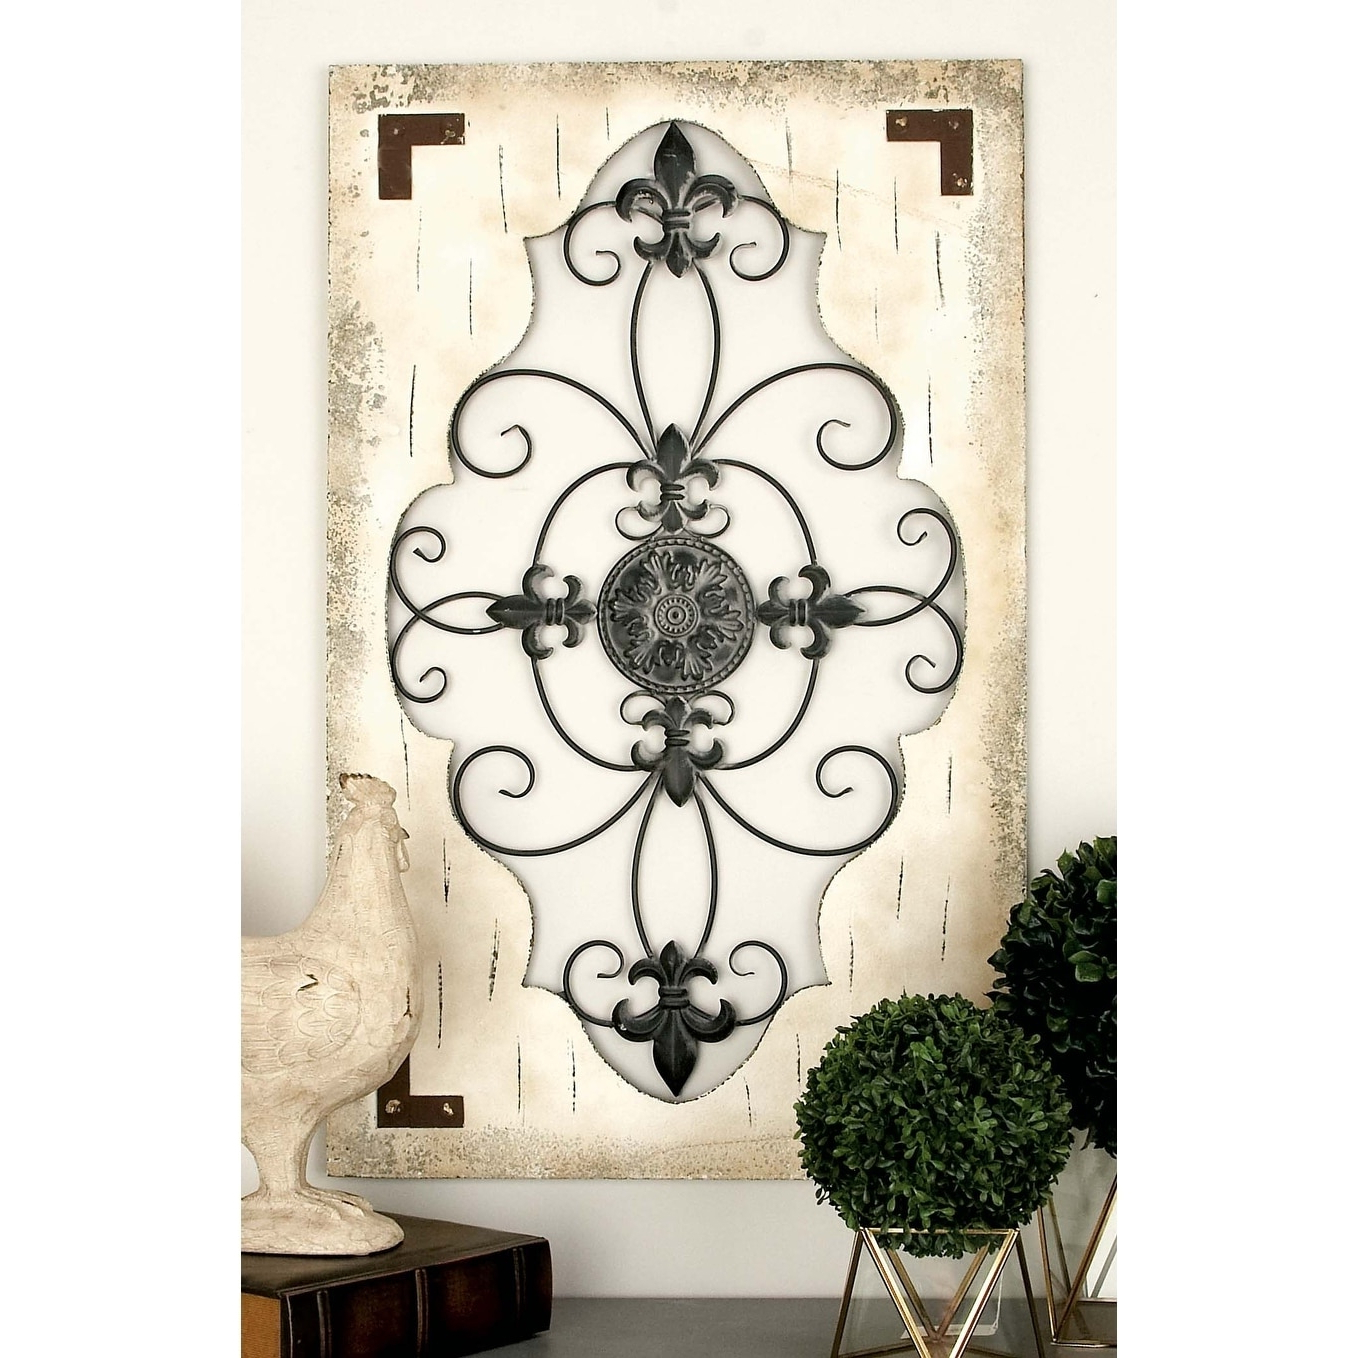 Newest Tree Branch Wall Décor By Fleur De Lis Living With Rustic 42 X 26 Inch Scroll And Fleur De Lis Wall Decorstudio (View 8 of 20)